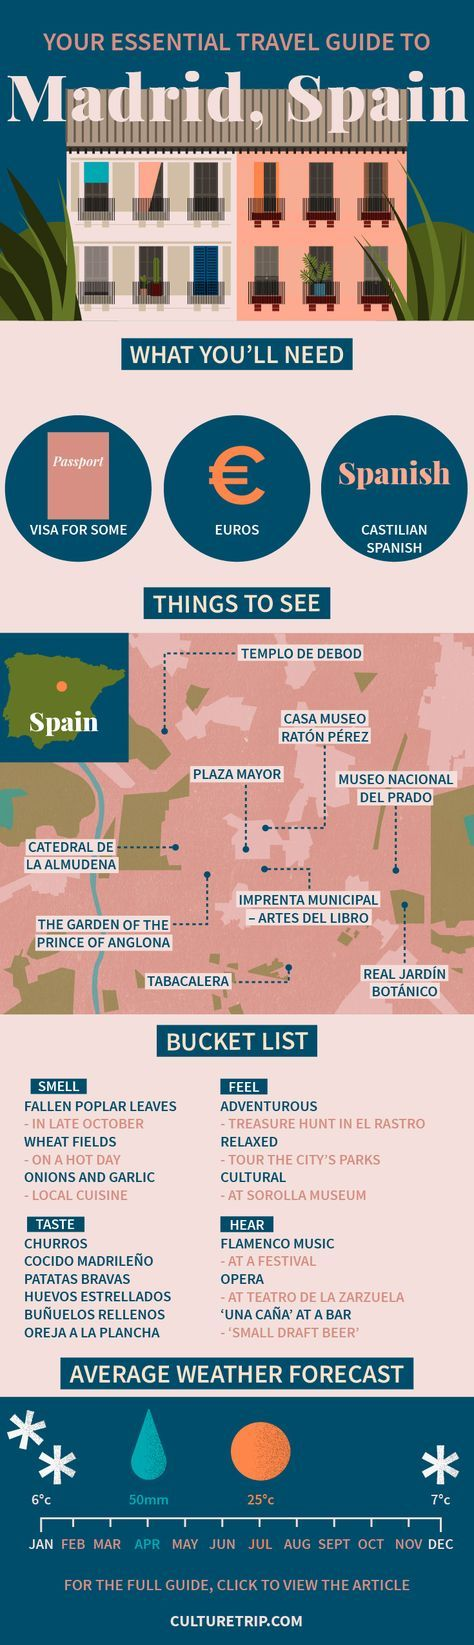 Your Essential Travel Guide to Madrid (Infographic) | Spain, Madrid, Barcelona, wanderlust, food, coffee, Europe, Travel, Map, where to eat, where to go, bucket list, adventure, illustration